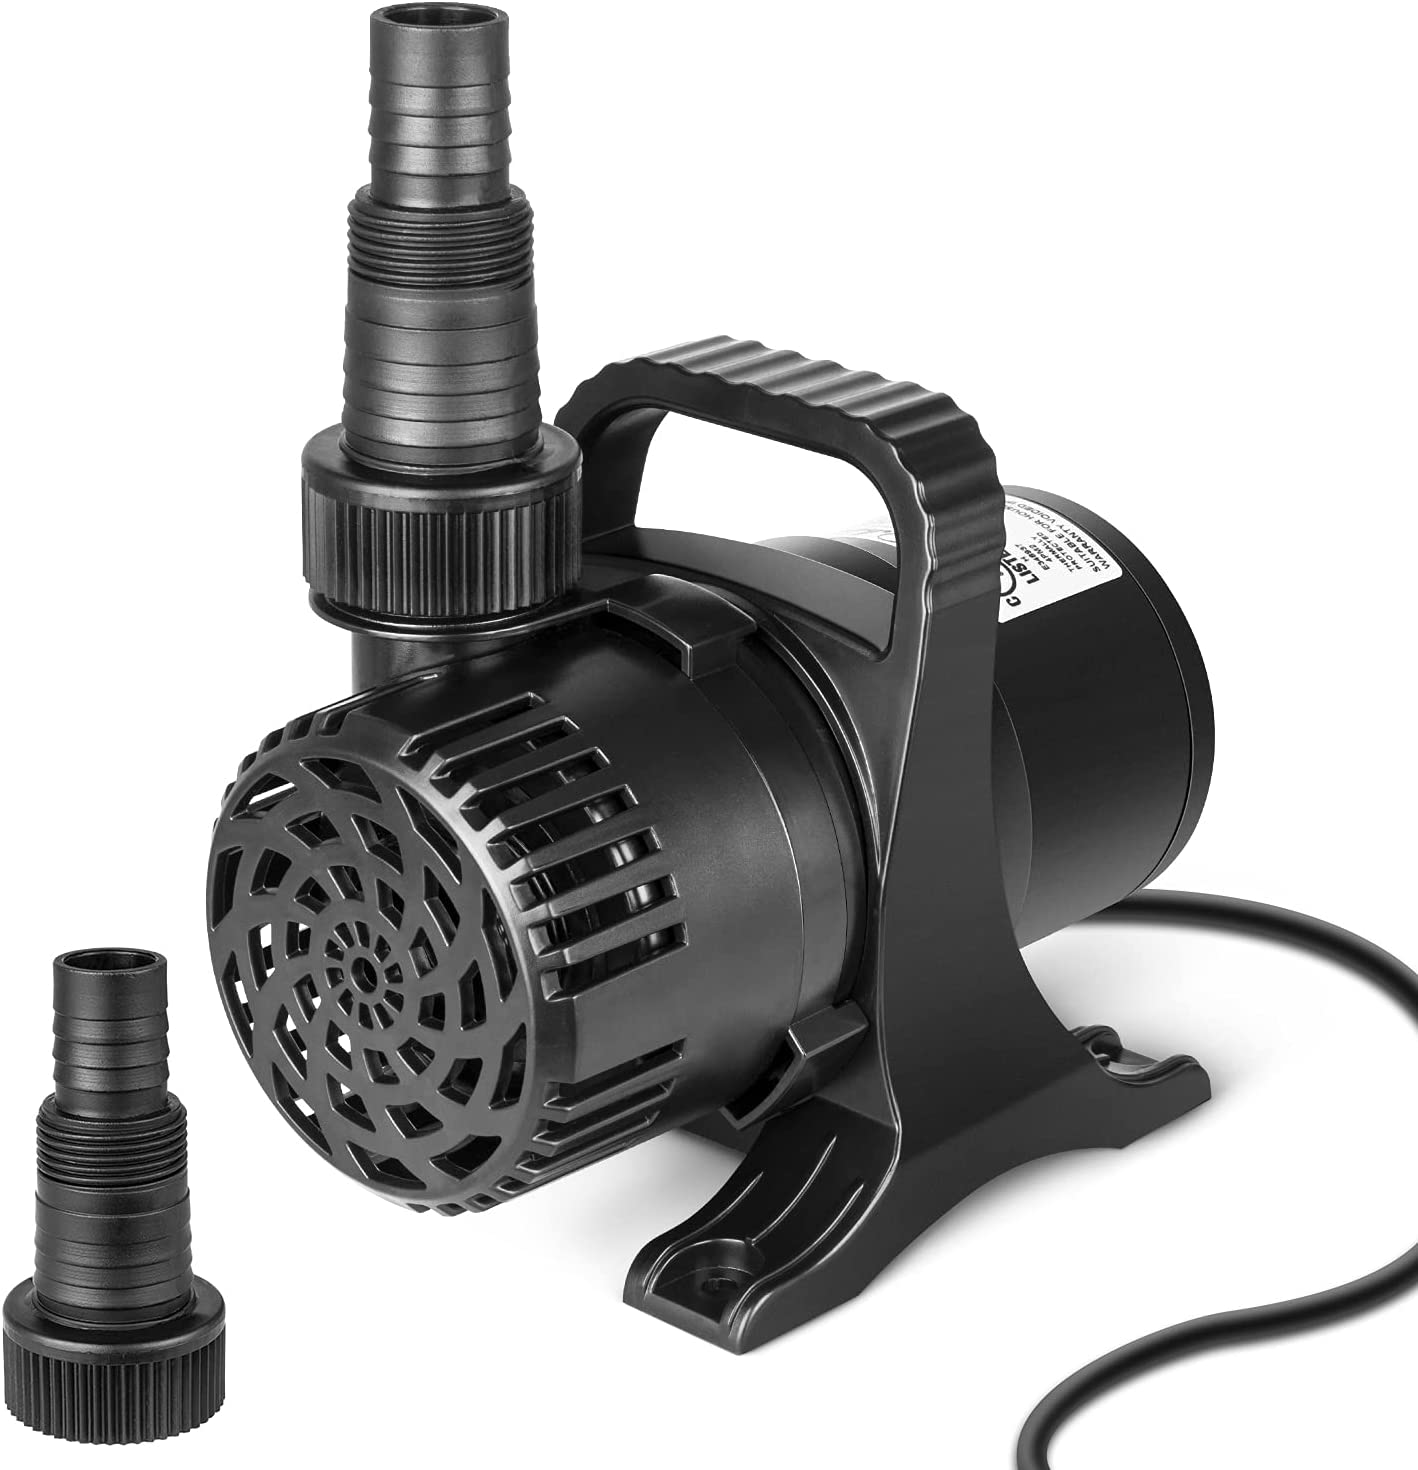 Simple Deluxe 120W 2700 GPH Ultra Quiet Submersible Water Pump with 20.3ft Power Cord High Lift for Pond Waterfall Fish Tank Statuary Hydroponic, 2700GPH, Black